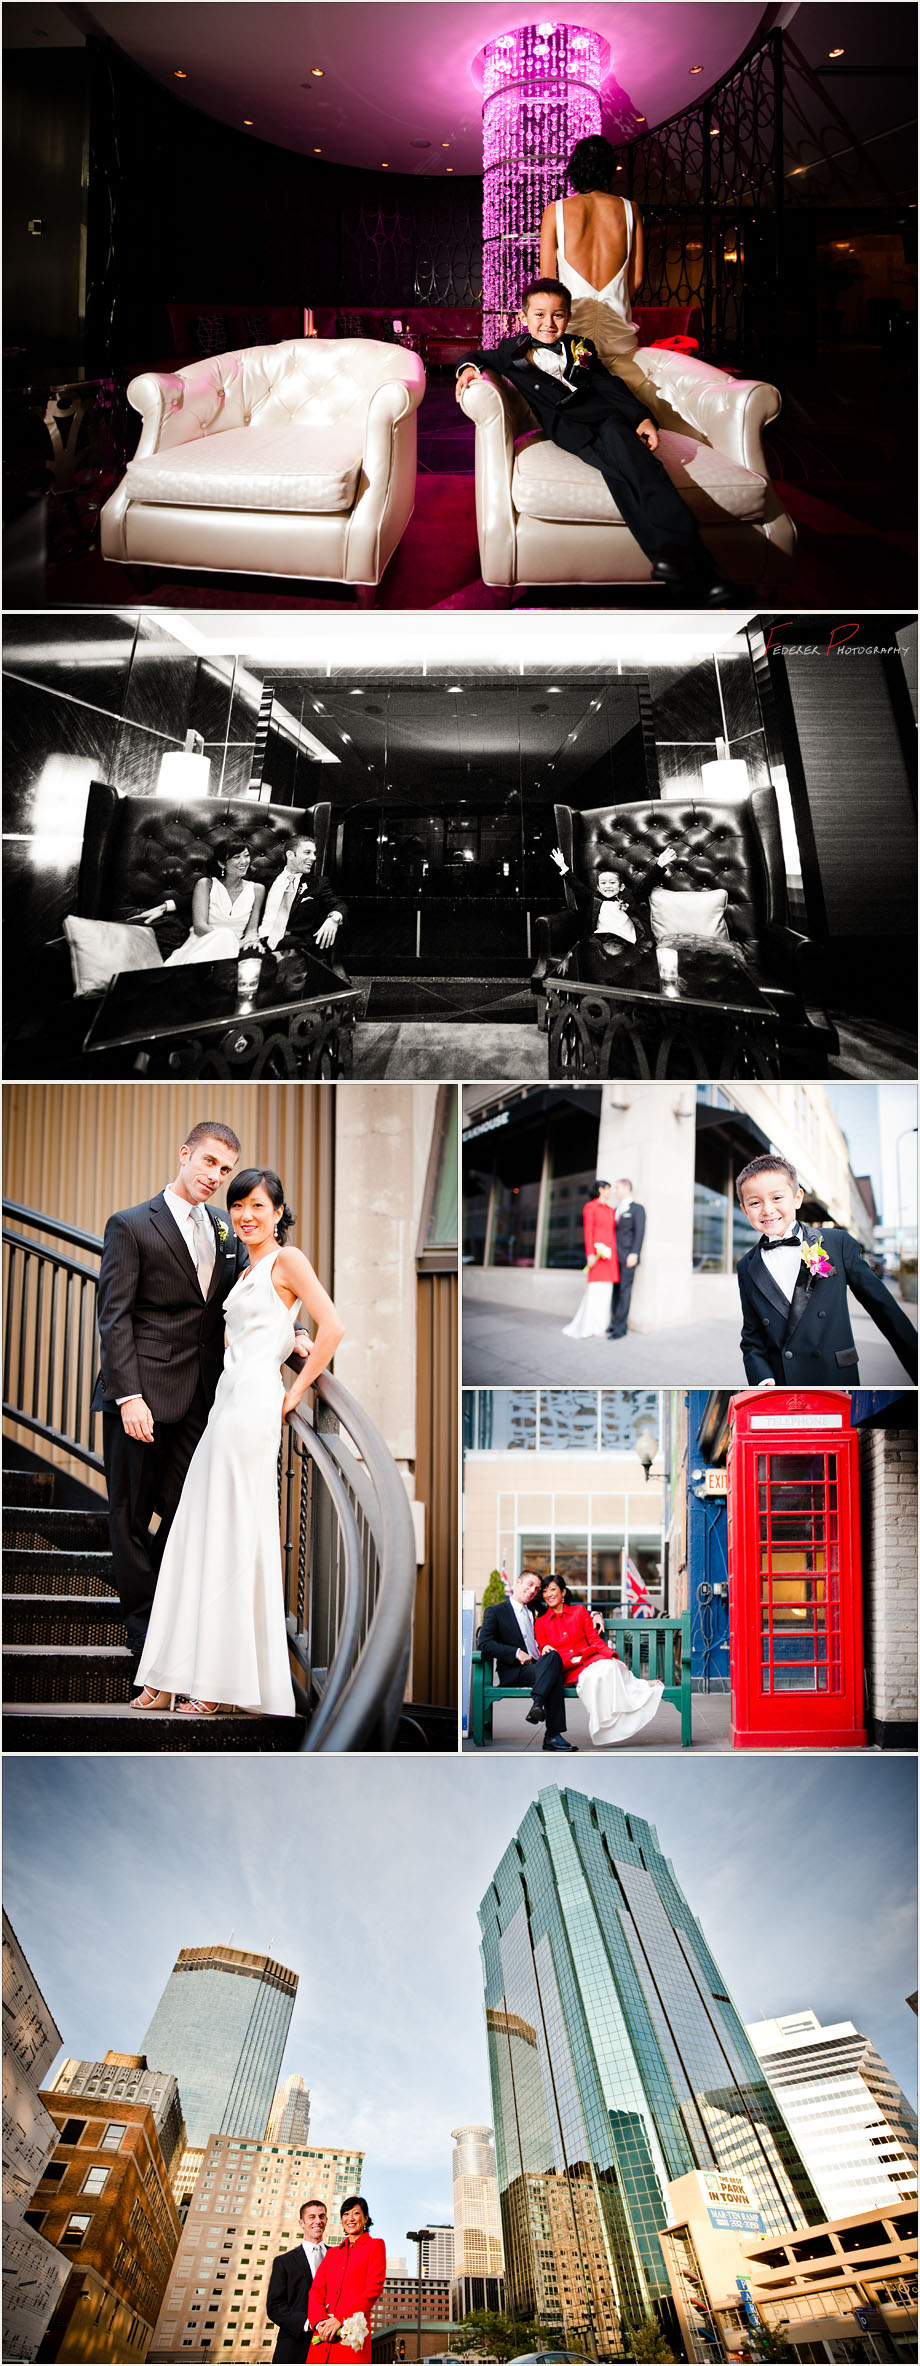 Wedding Photographs from Downtown Minneapolis, Minnesota